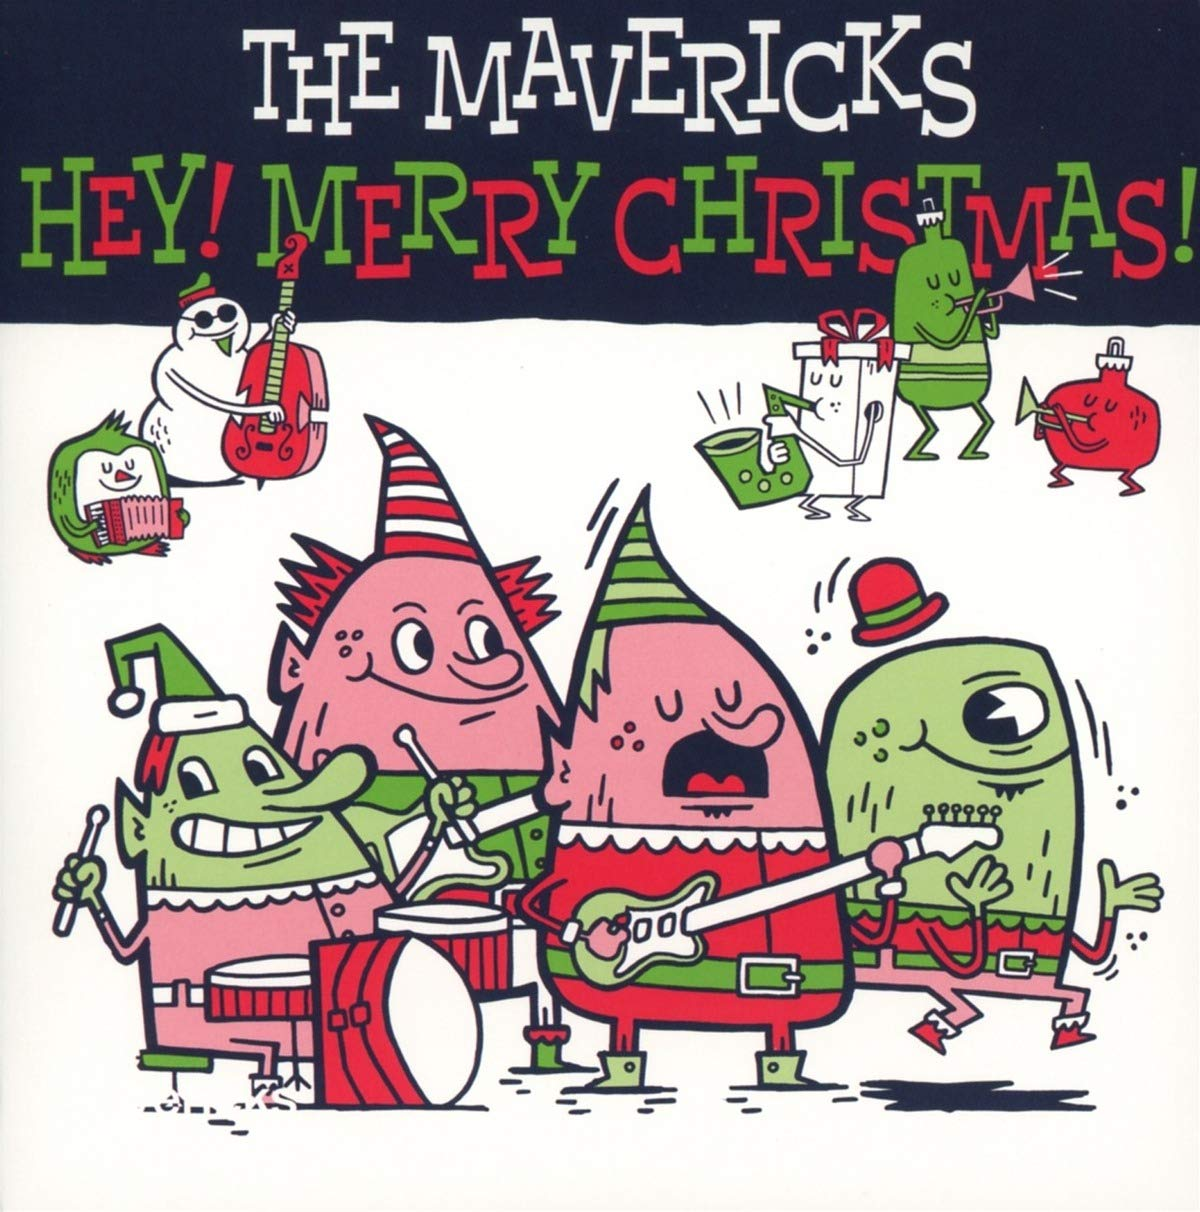 Mavericks Christmas Album 2020 The Mavericks   Hey! Merry Christmas!   Amazon.Music